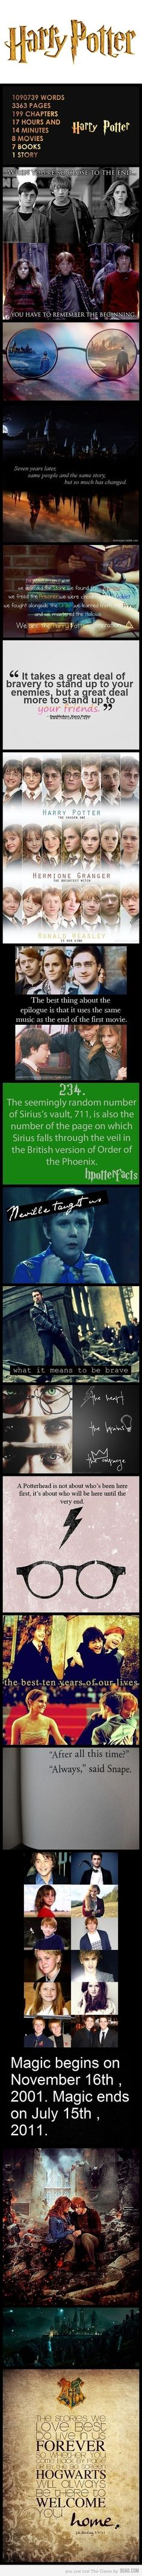 Harry Potter Forever!